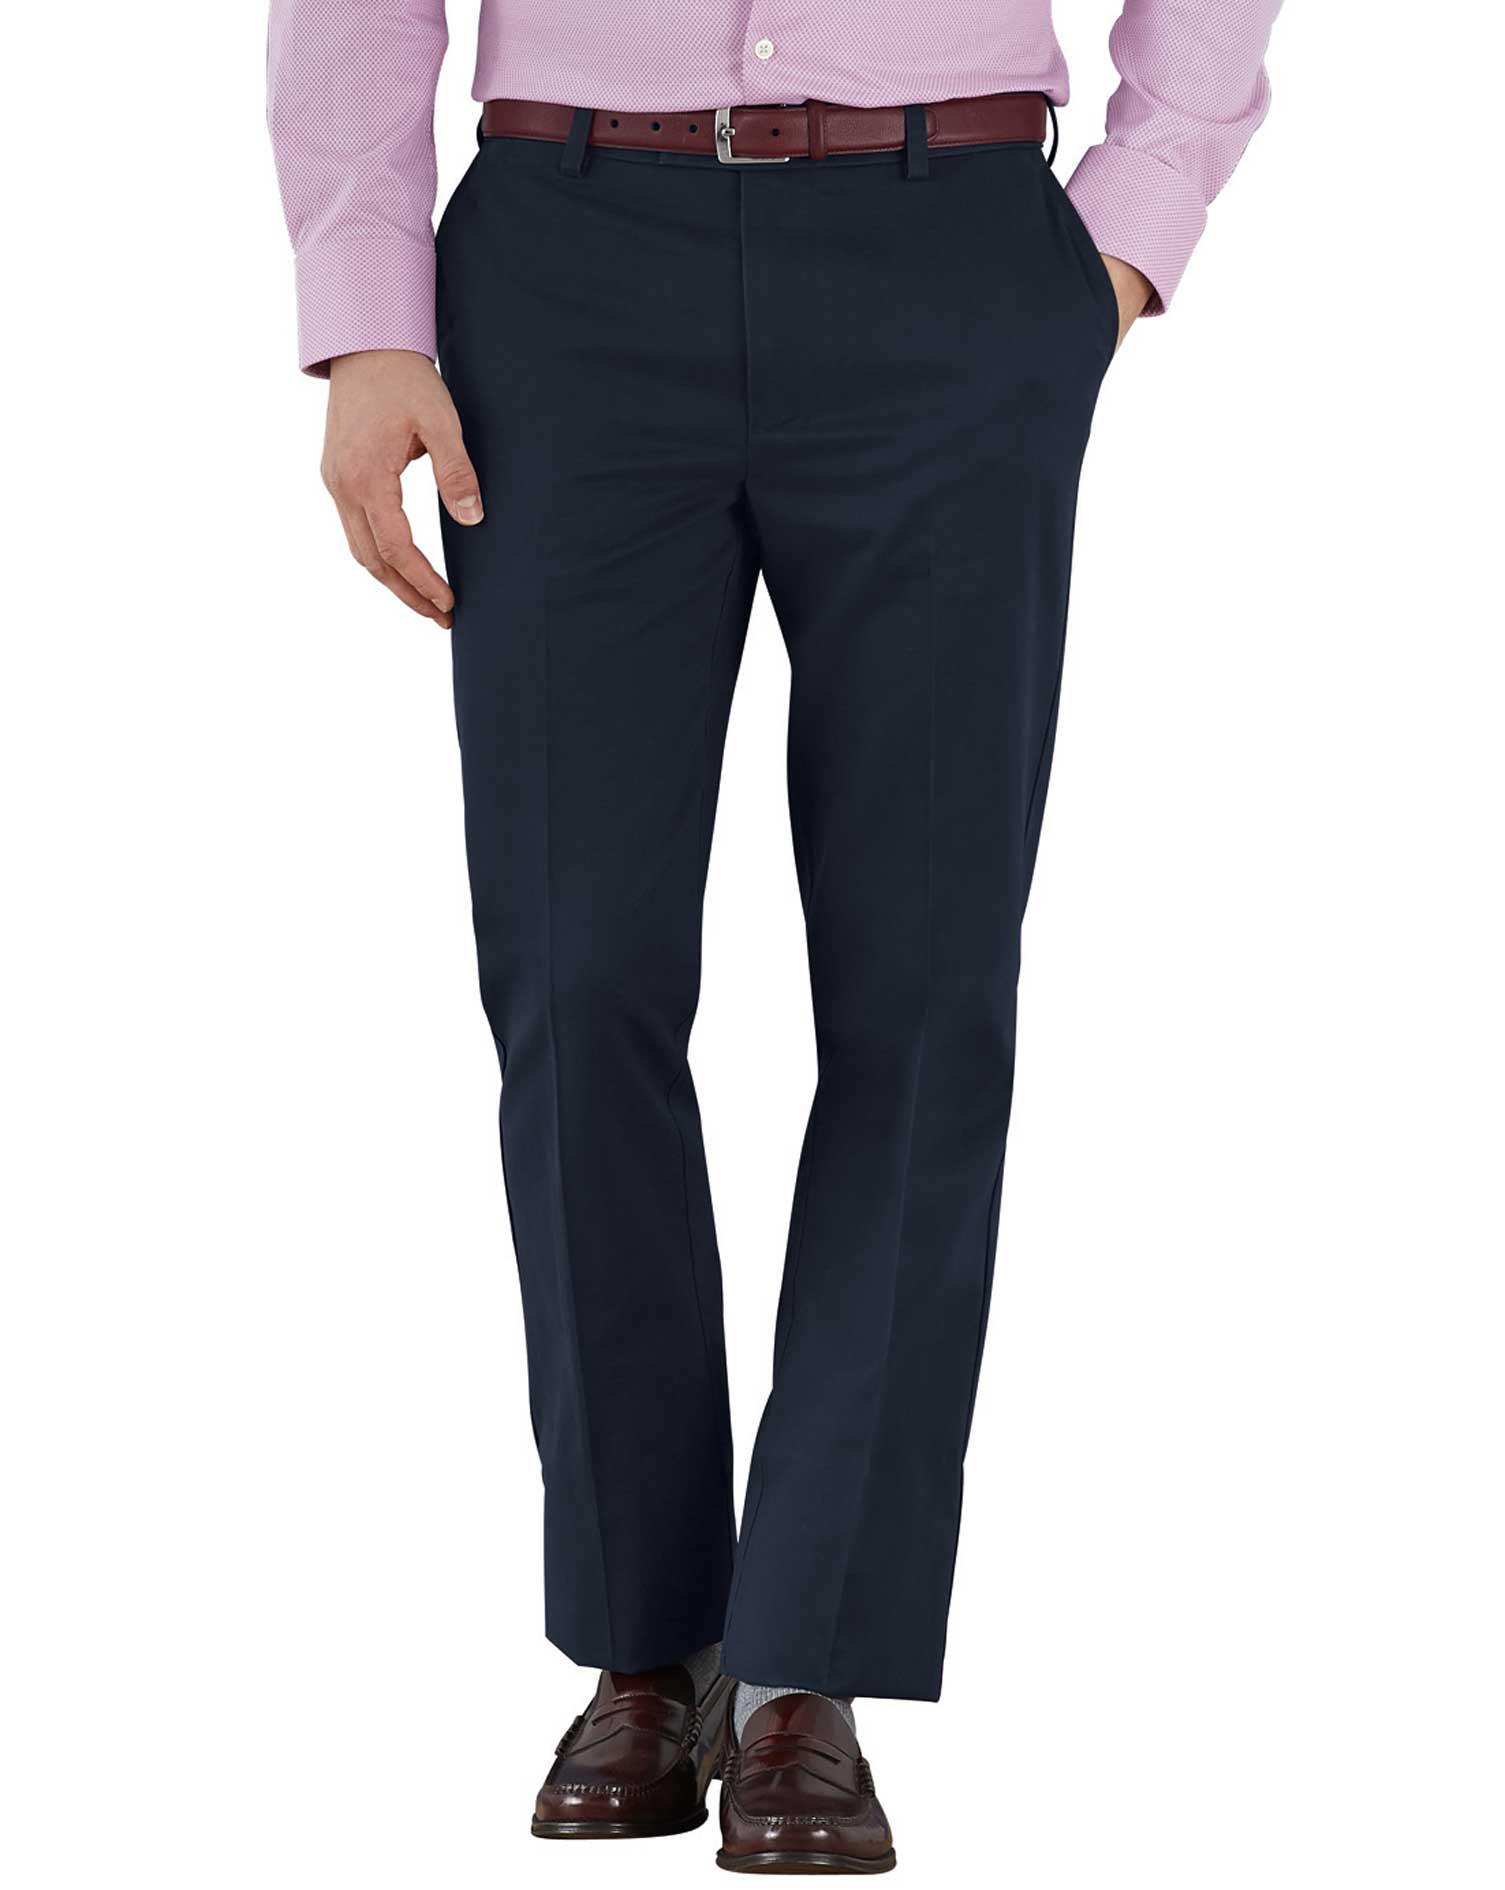 Navy Slim Fit Flat Front Non-Iron Cotton Chino Trousers Size W38 L38 by Charles Tyrwhitt